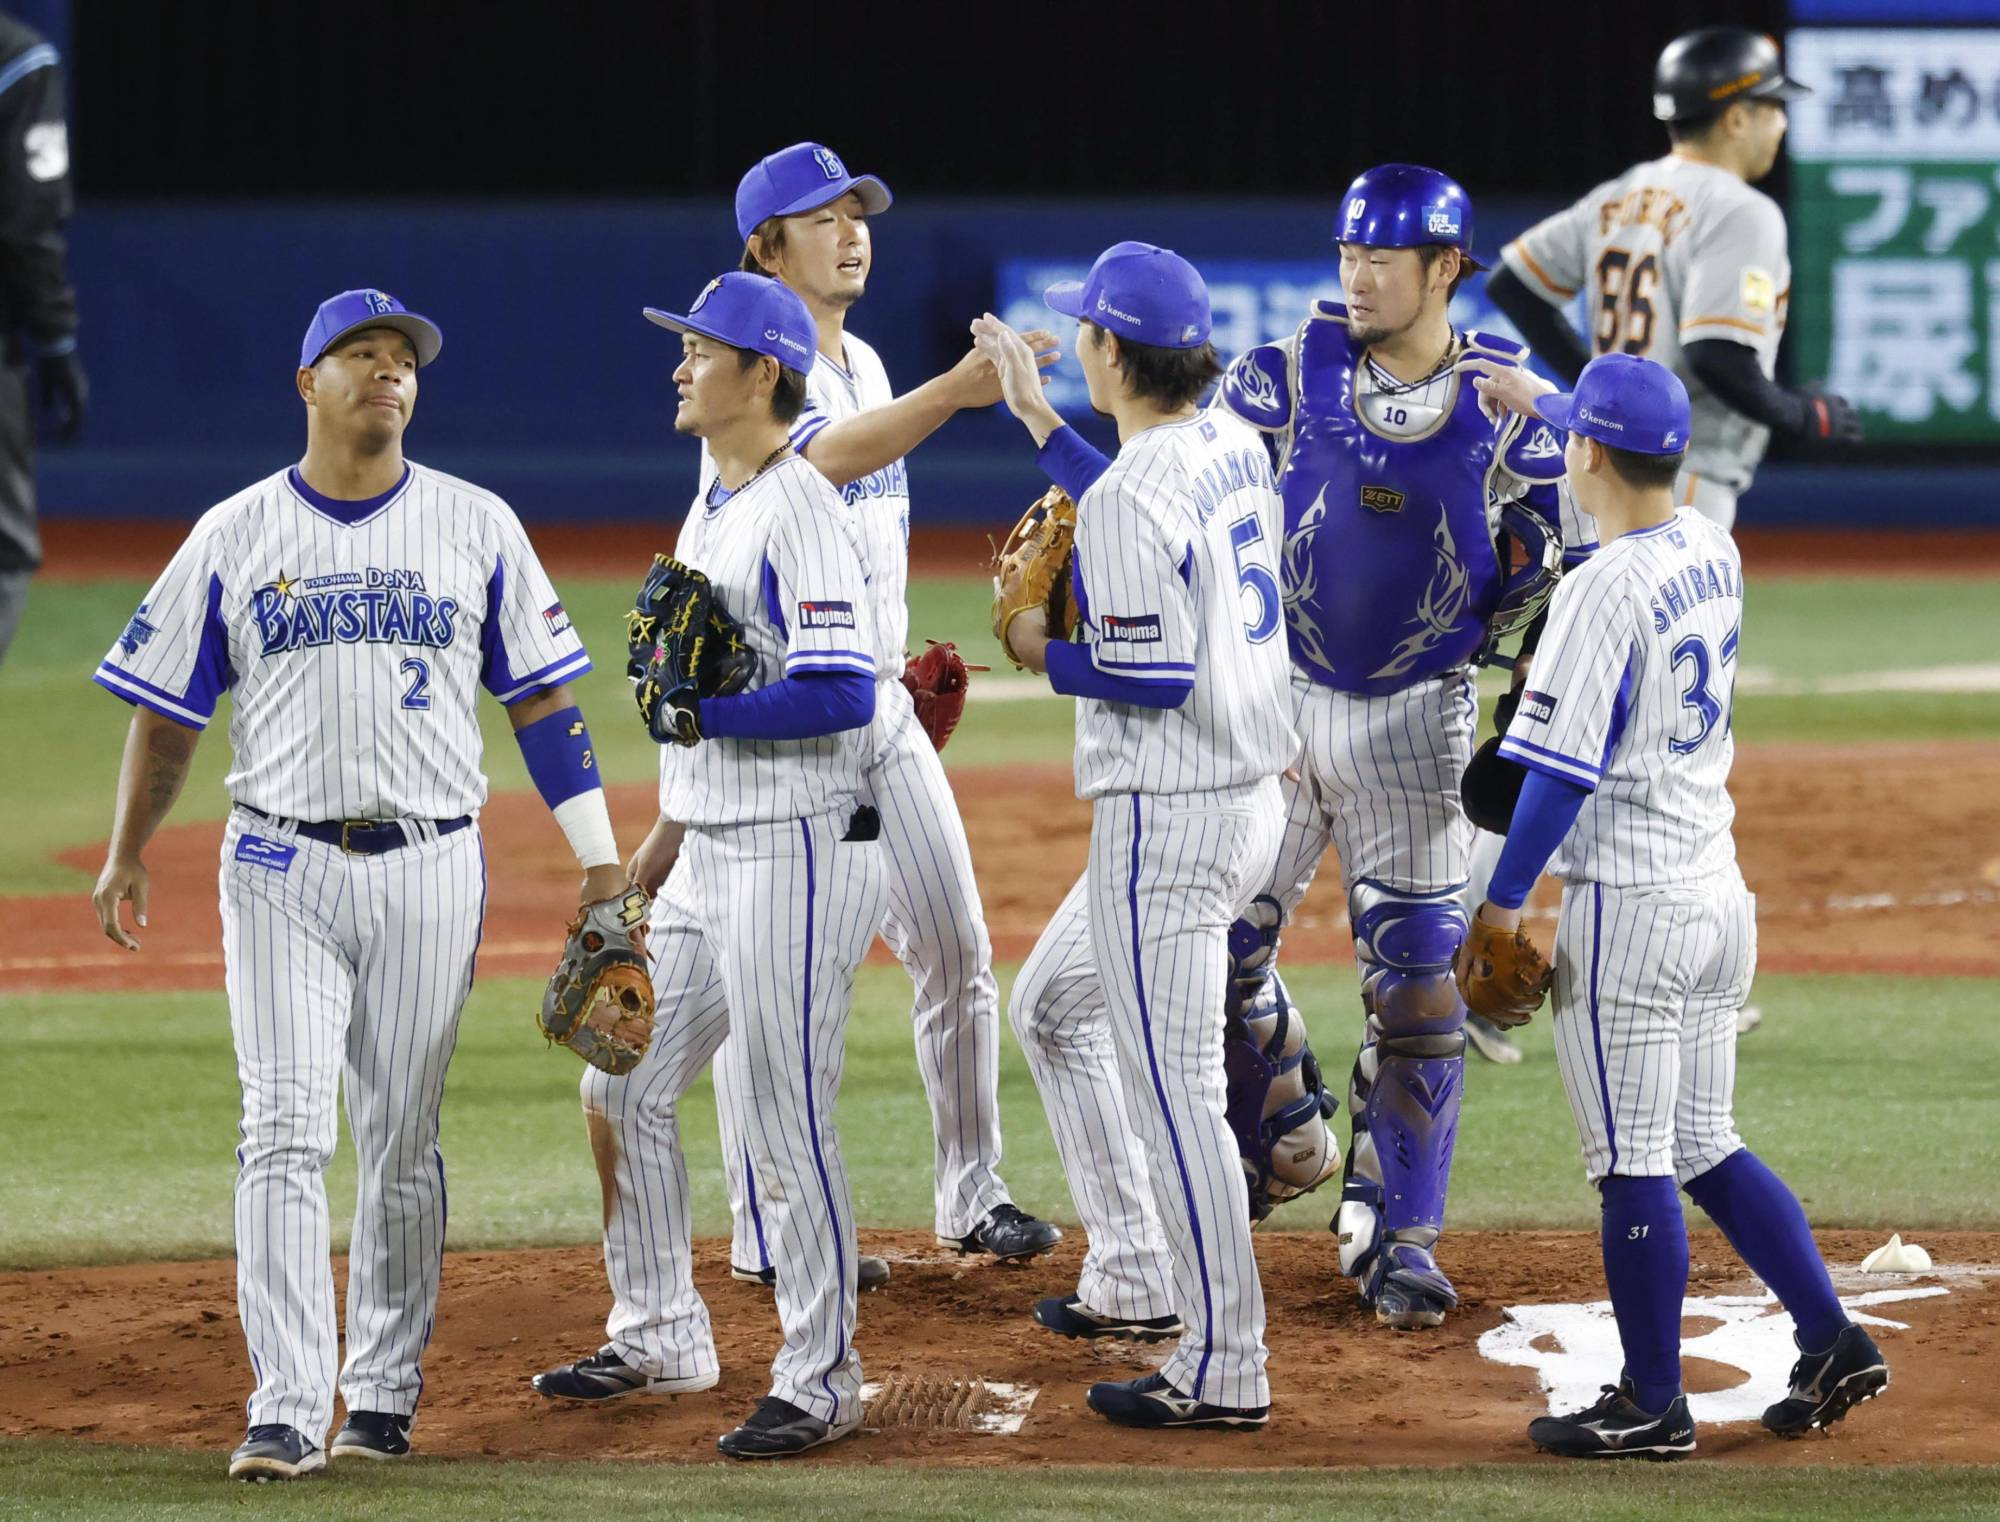 BayStars players celebrate after earning a third straight win over the Giants on Thursday in Yokohama. | KYODO